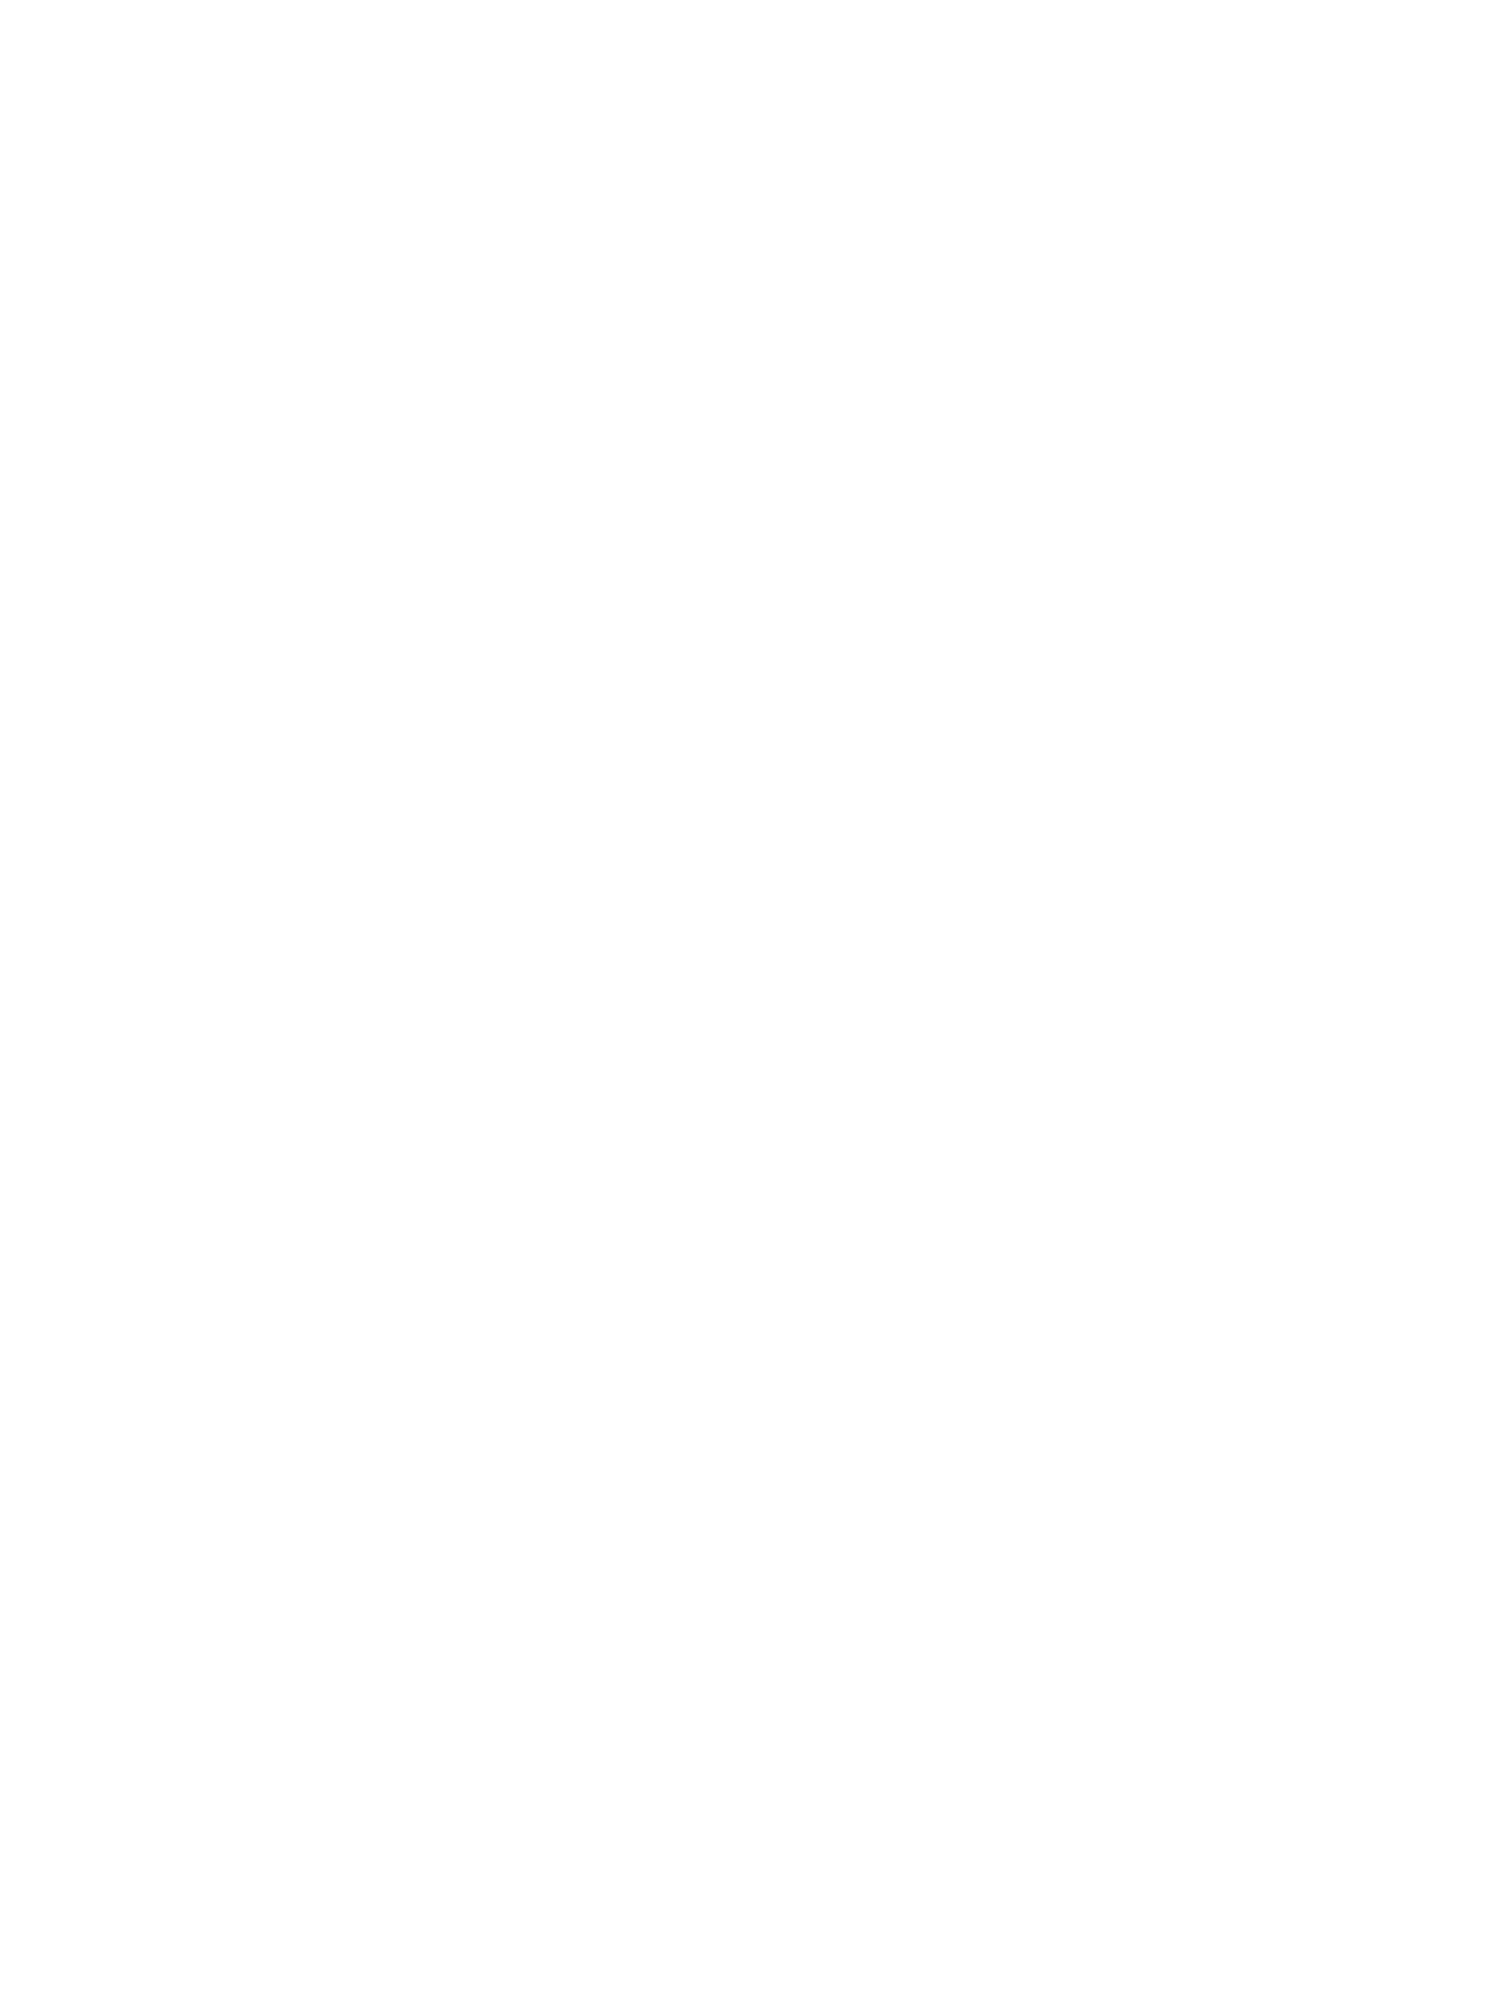 Poweredbydoughnuts